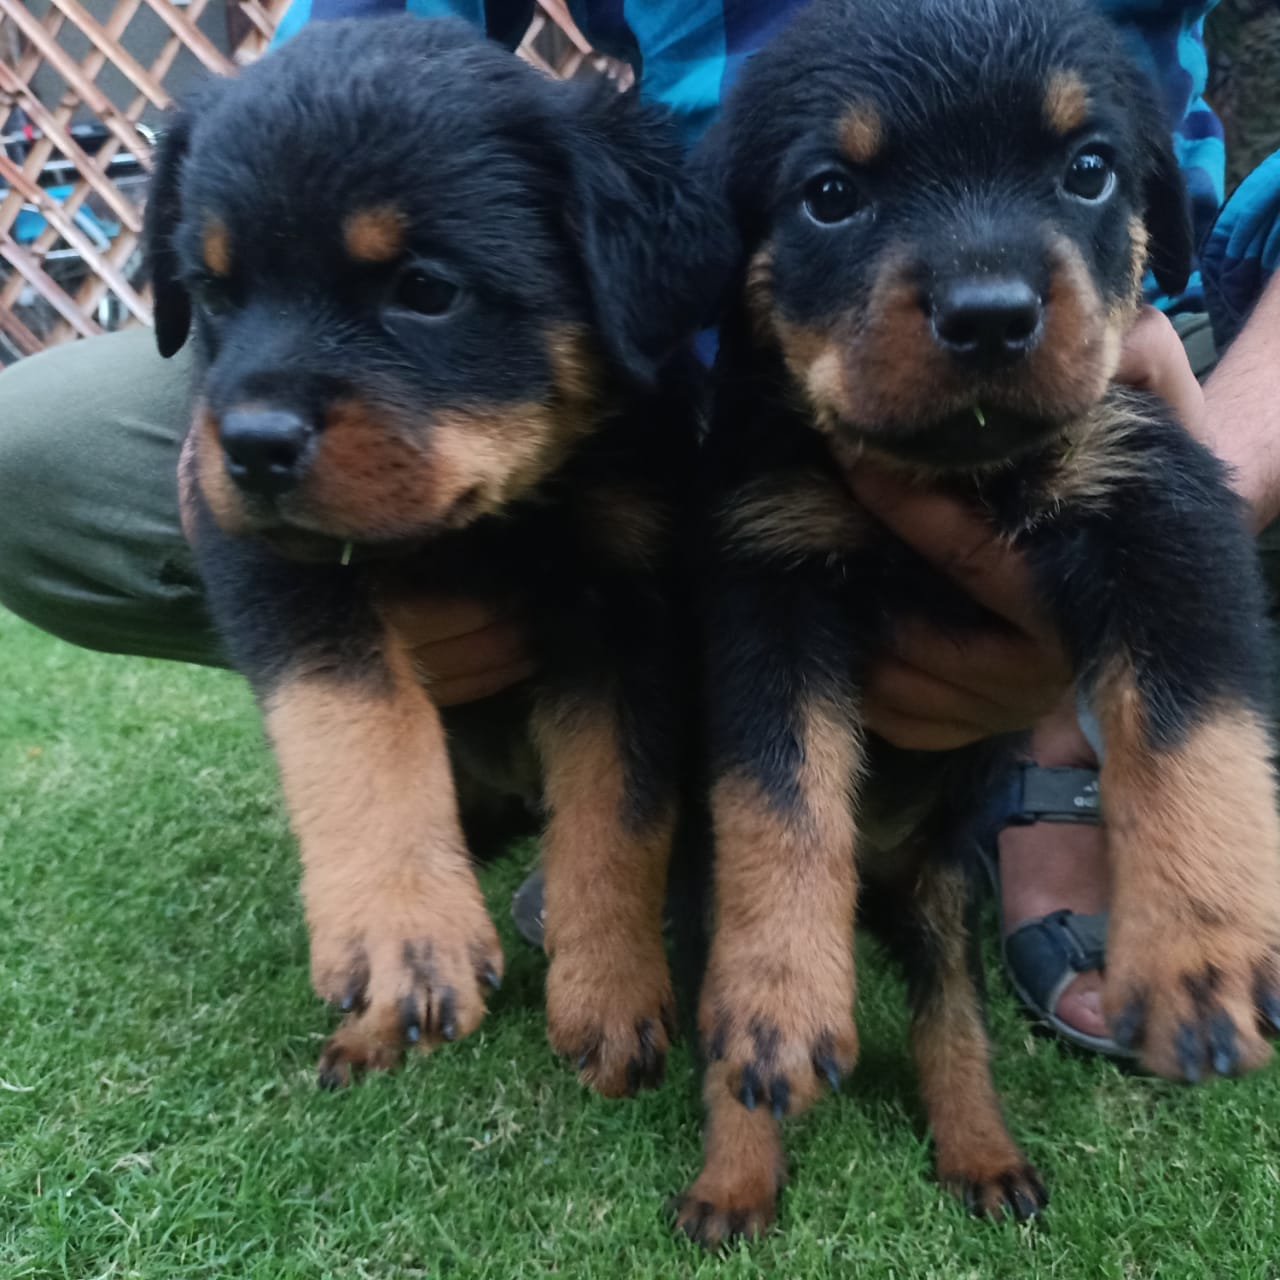 pedigree rottweiler puppies - Dog - Buy and Sell Pets in Lahore